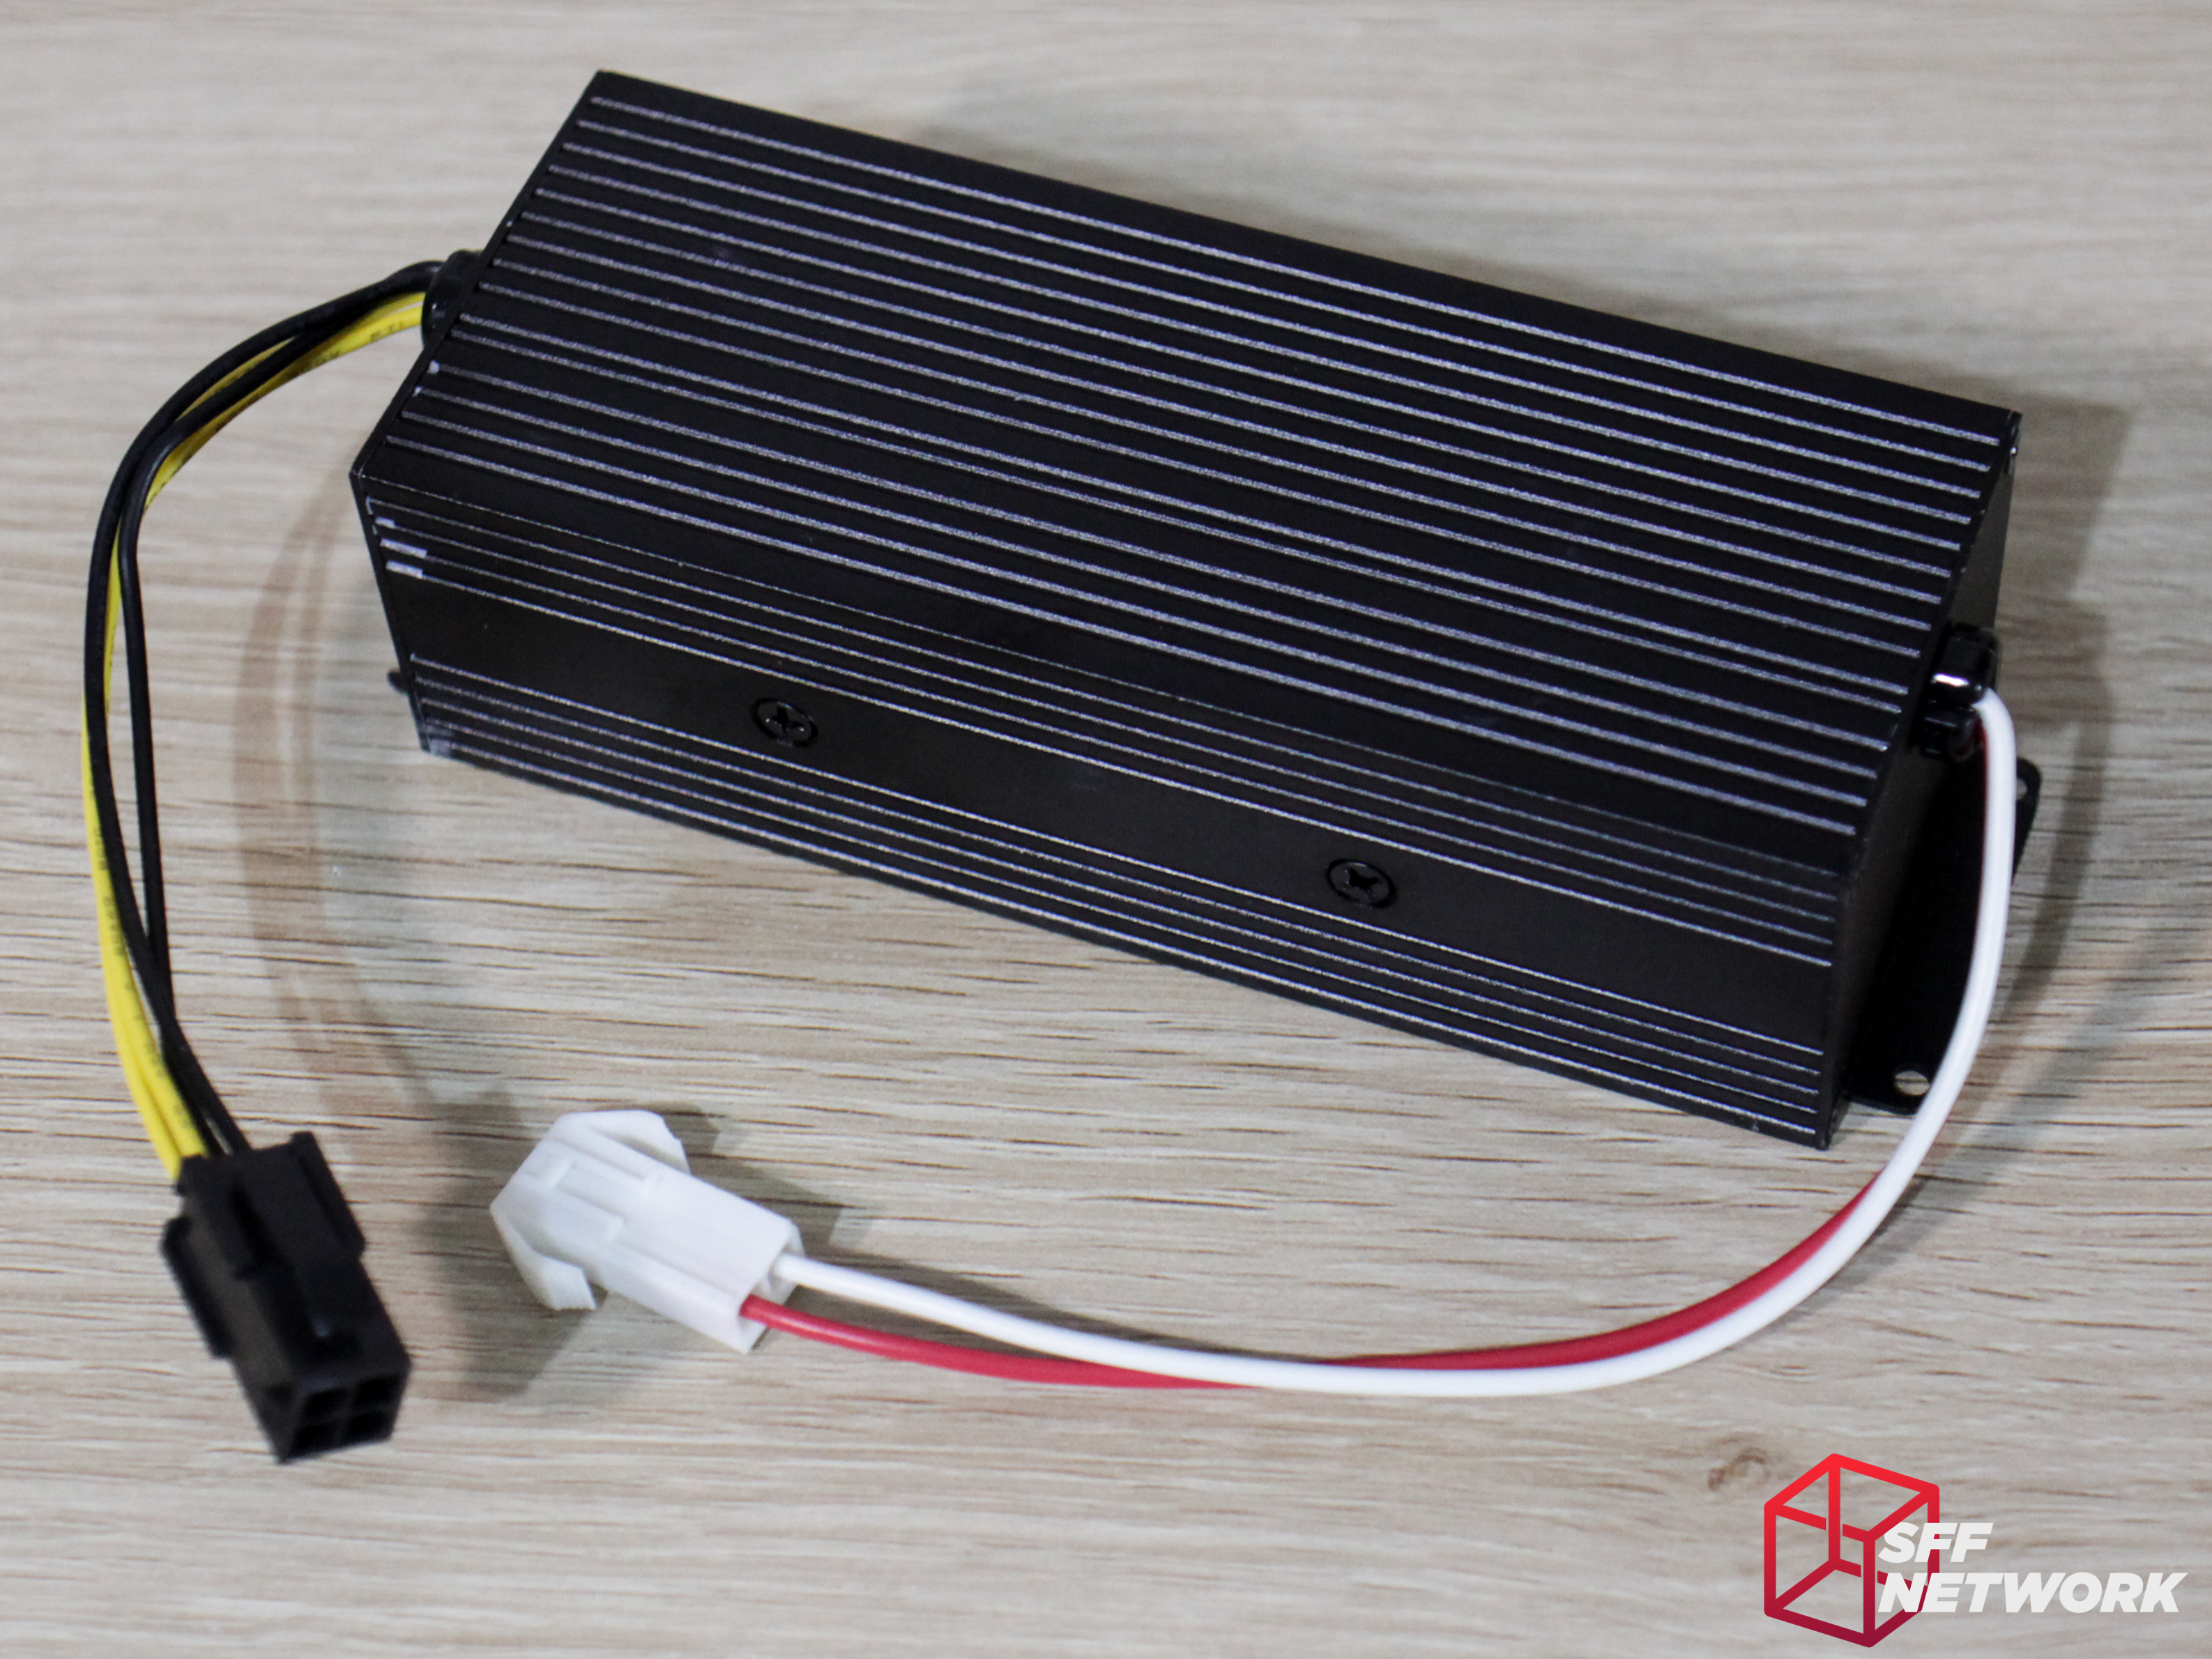 Hdplex Ac Dc 160w And 300w A Powerful Solution Small Form Power Supply Built In Emi Filter With Overload Short Circuit Now For The Showpiece Passively Cooled Subtle Unit That Is Clothed Somewhat Robust Black Powdercoat